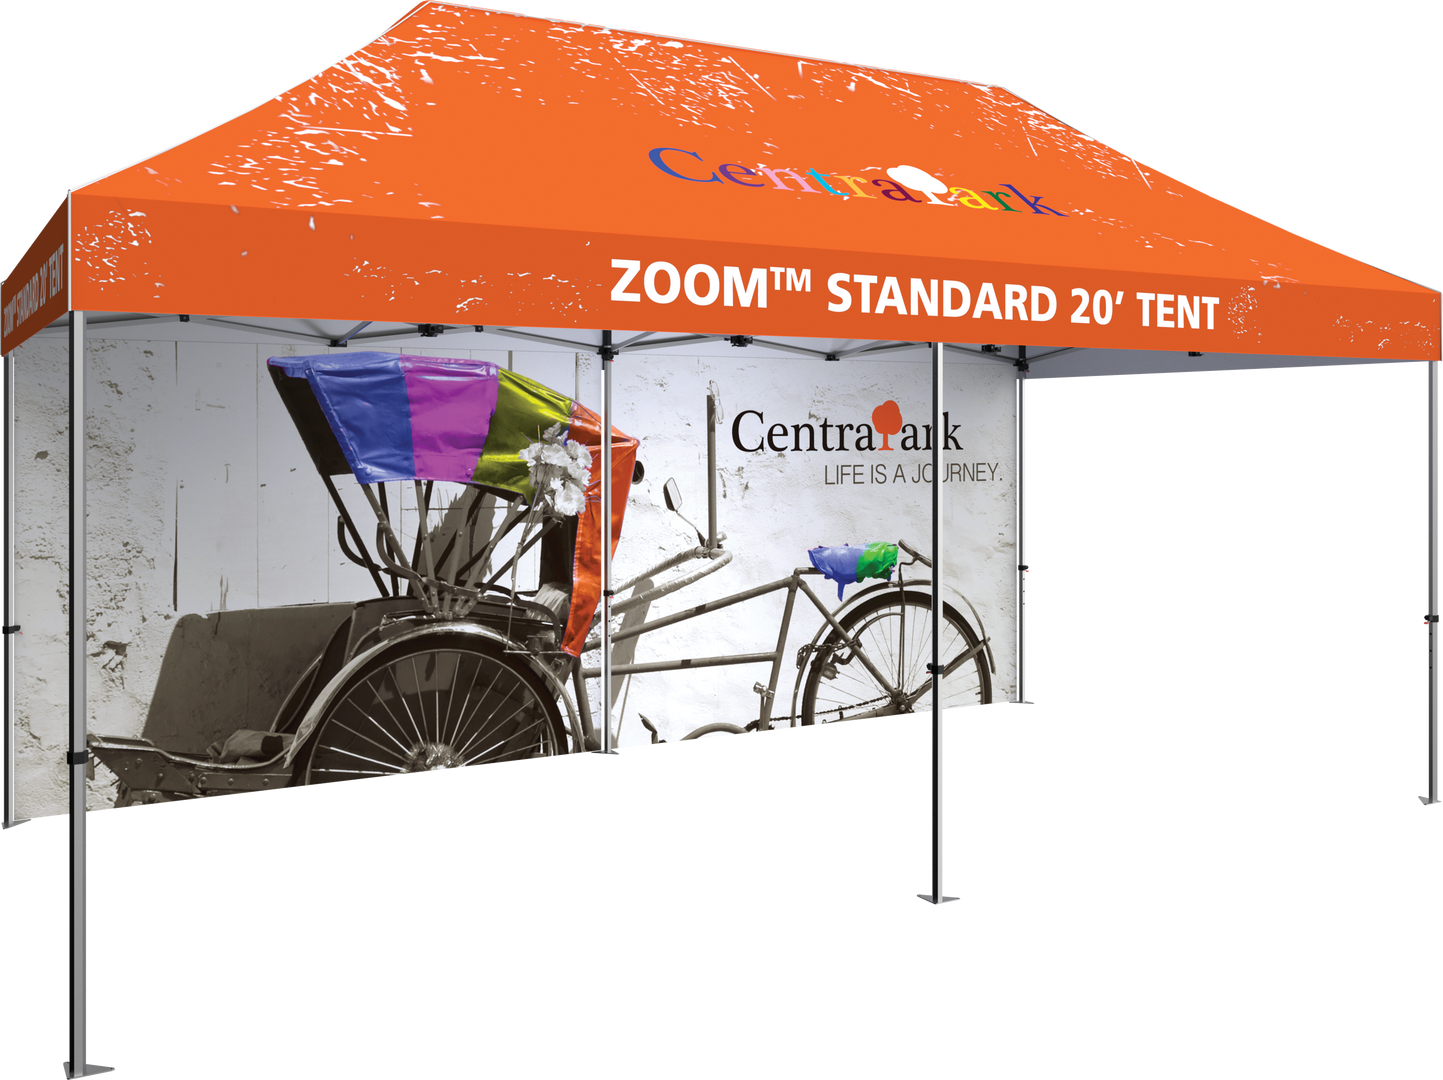 Zoom-standard-20-popup-tent_full-wall-le